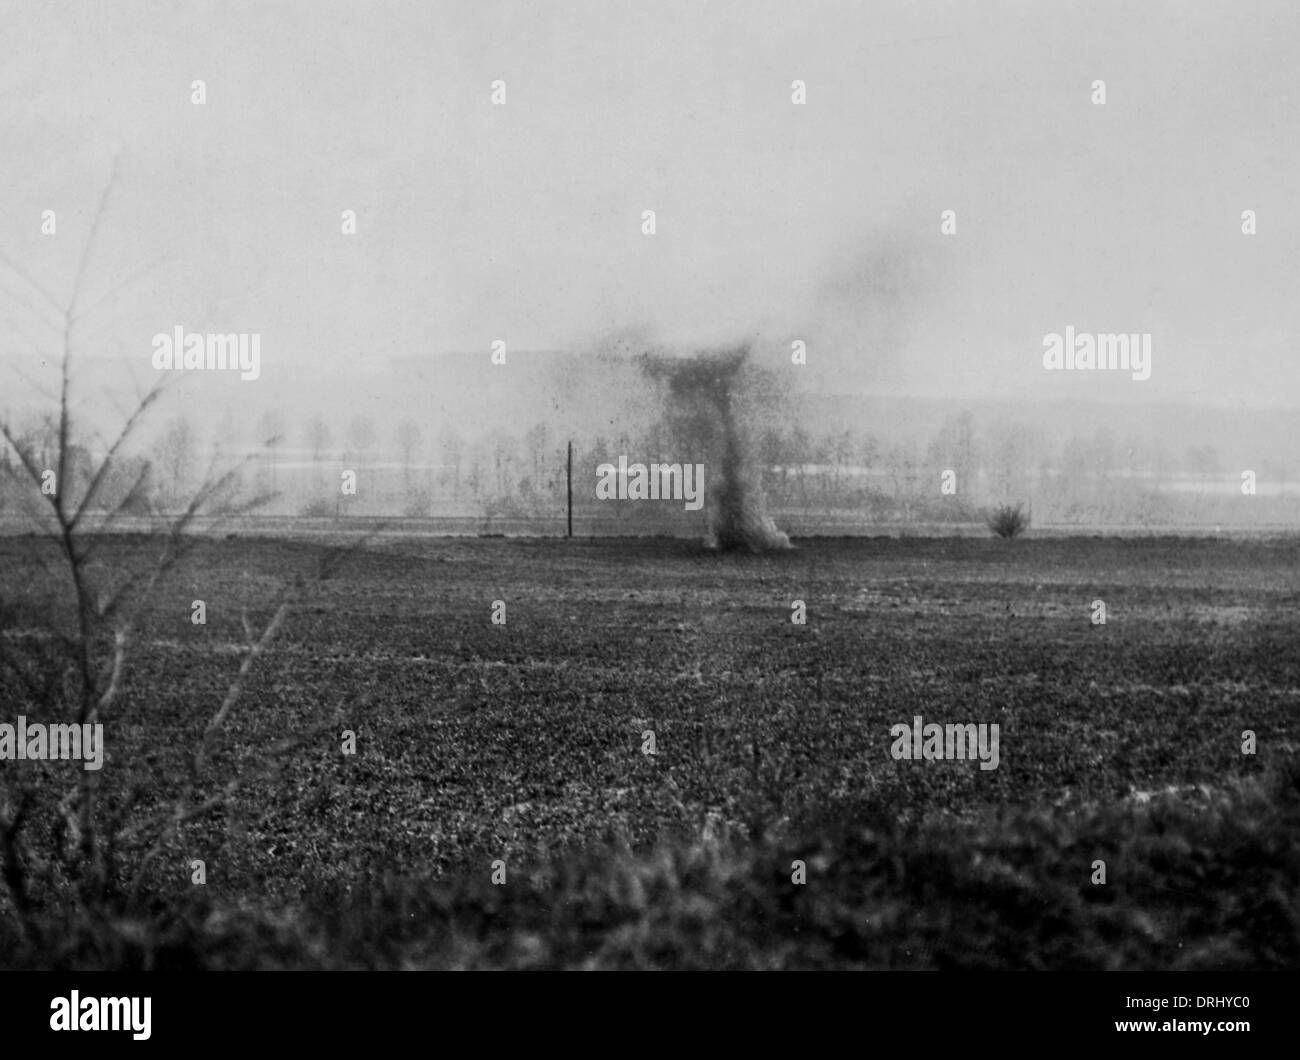 German shell exploding, Western Front, France, WW1 - Stock Image